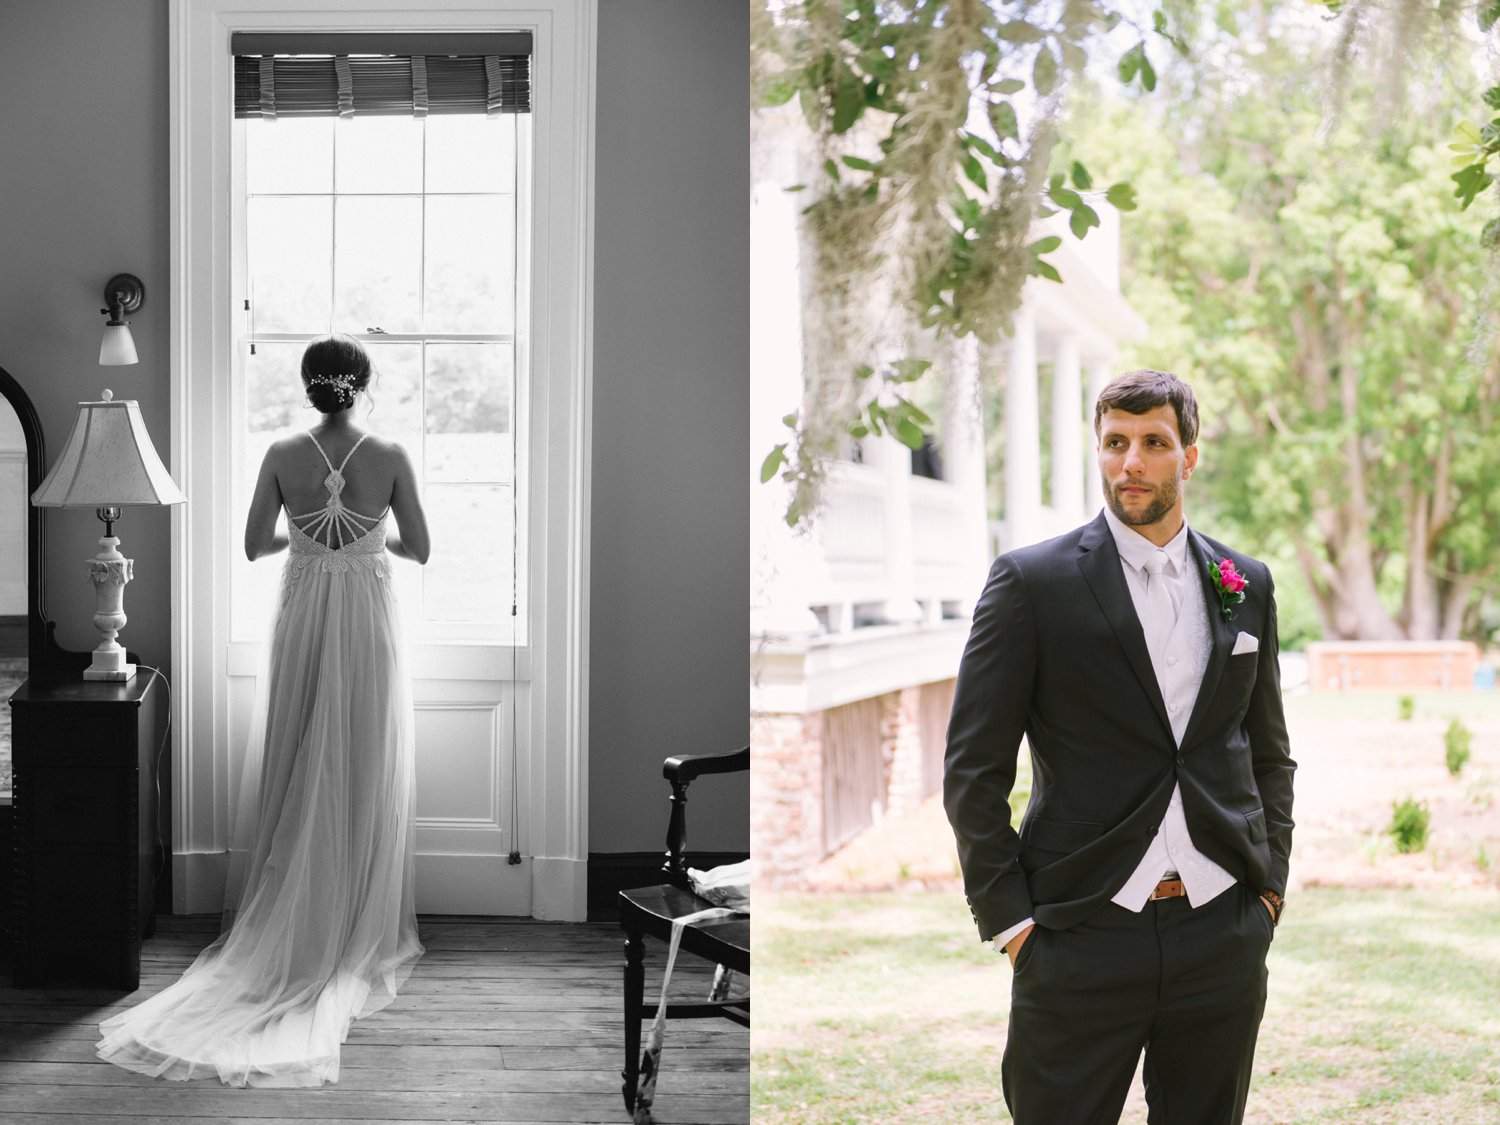 Lindsey_A_Miller_Photography_mcleod_plantation_wedding_charleston_south_carolina_clear_tent_spring_mod_events_025.jpg